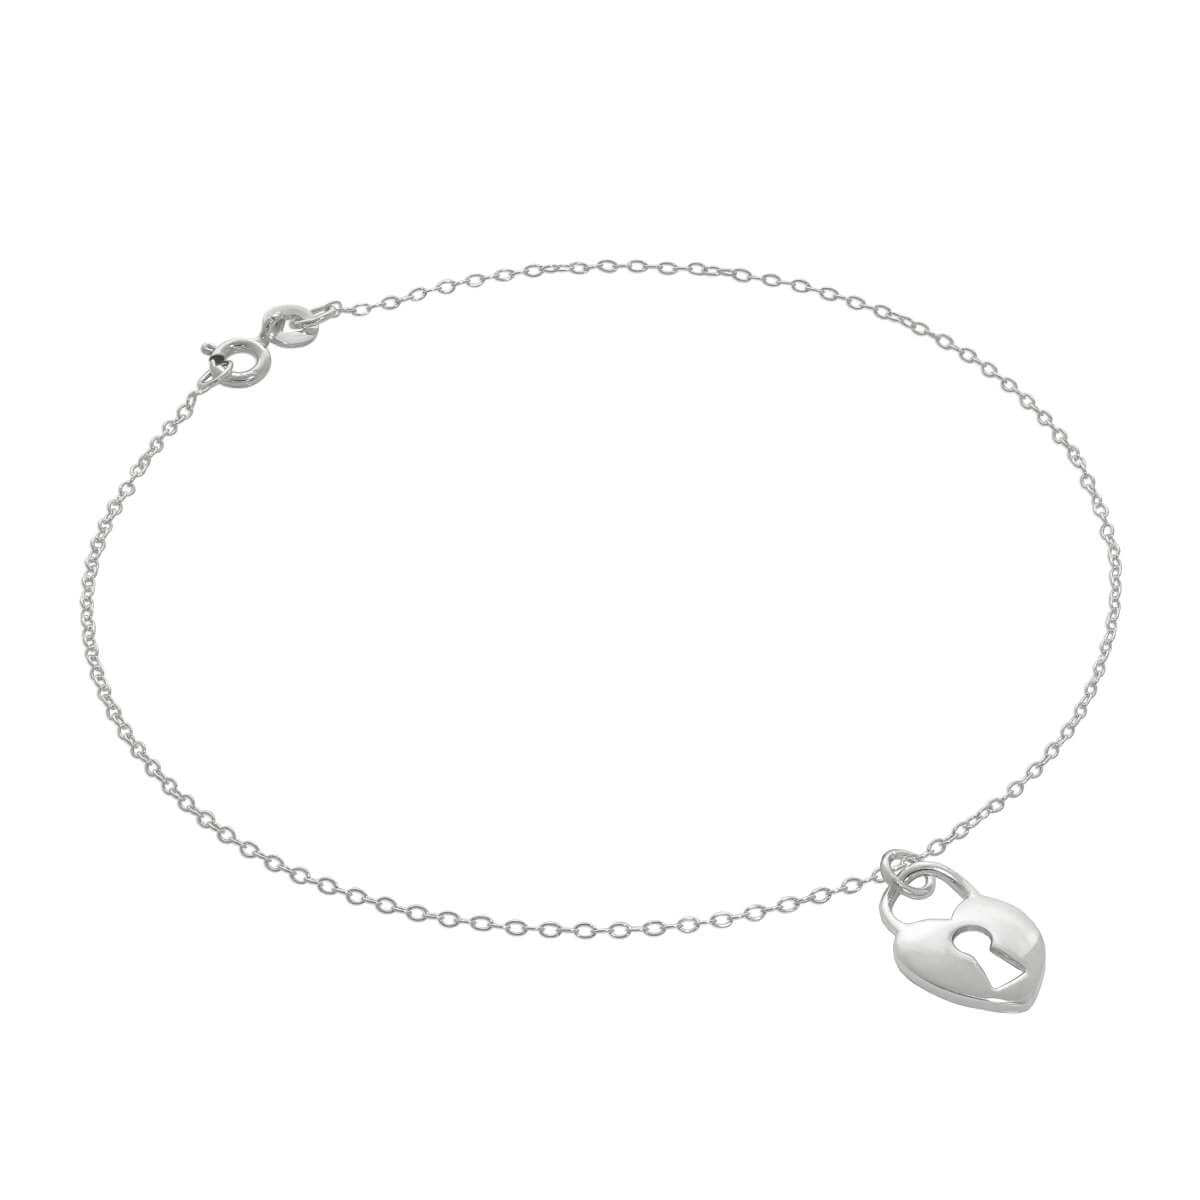 Fine Sterling Silver Belcher Anklet with Heart Padlock Charm - 10 Inches